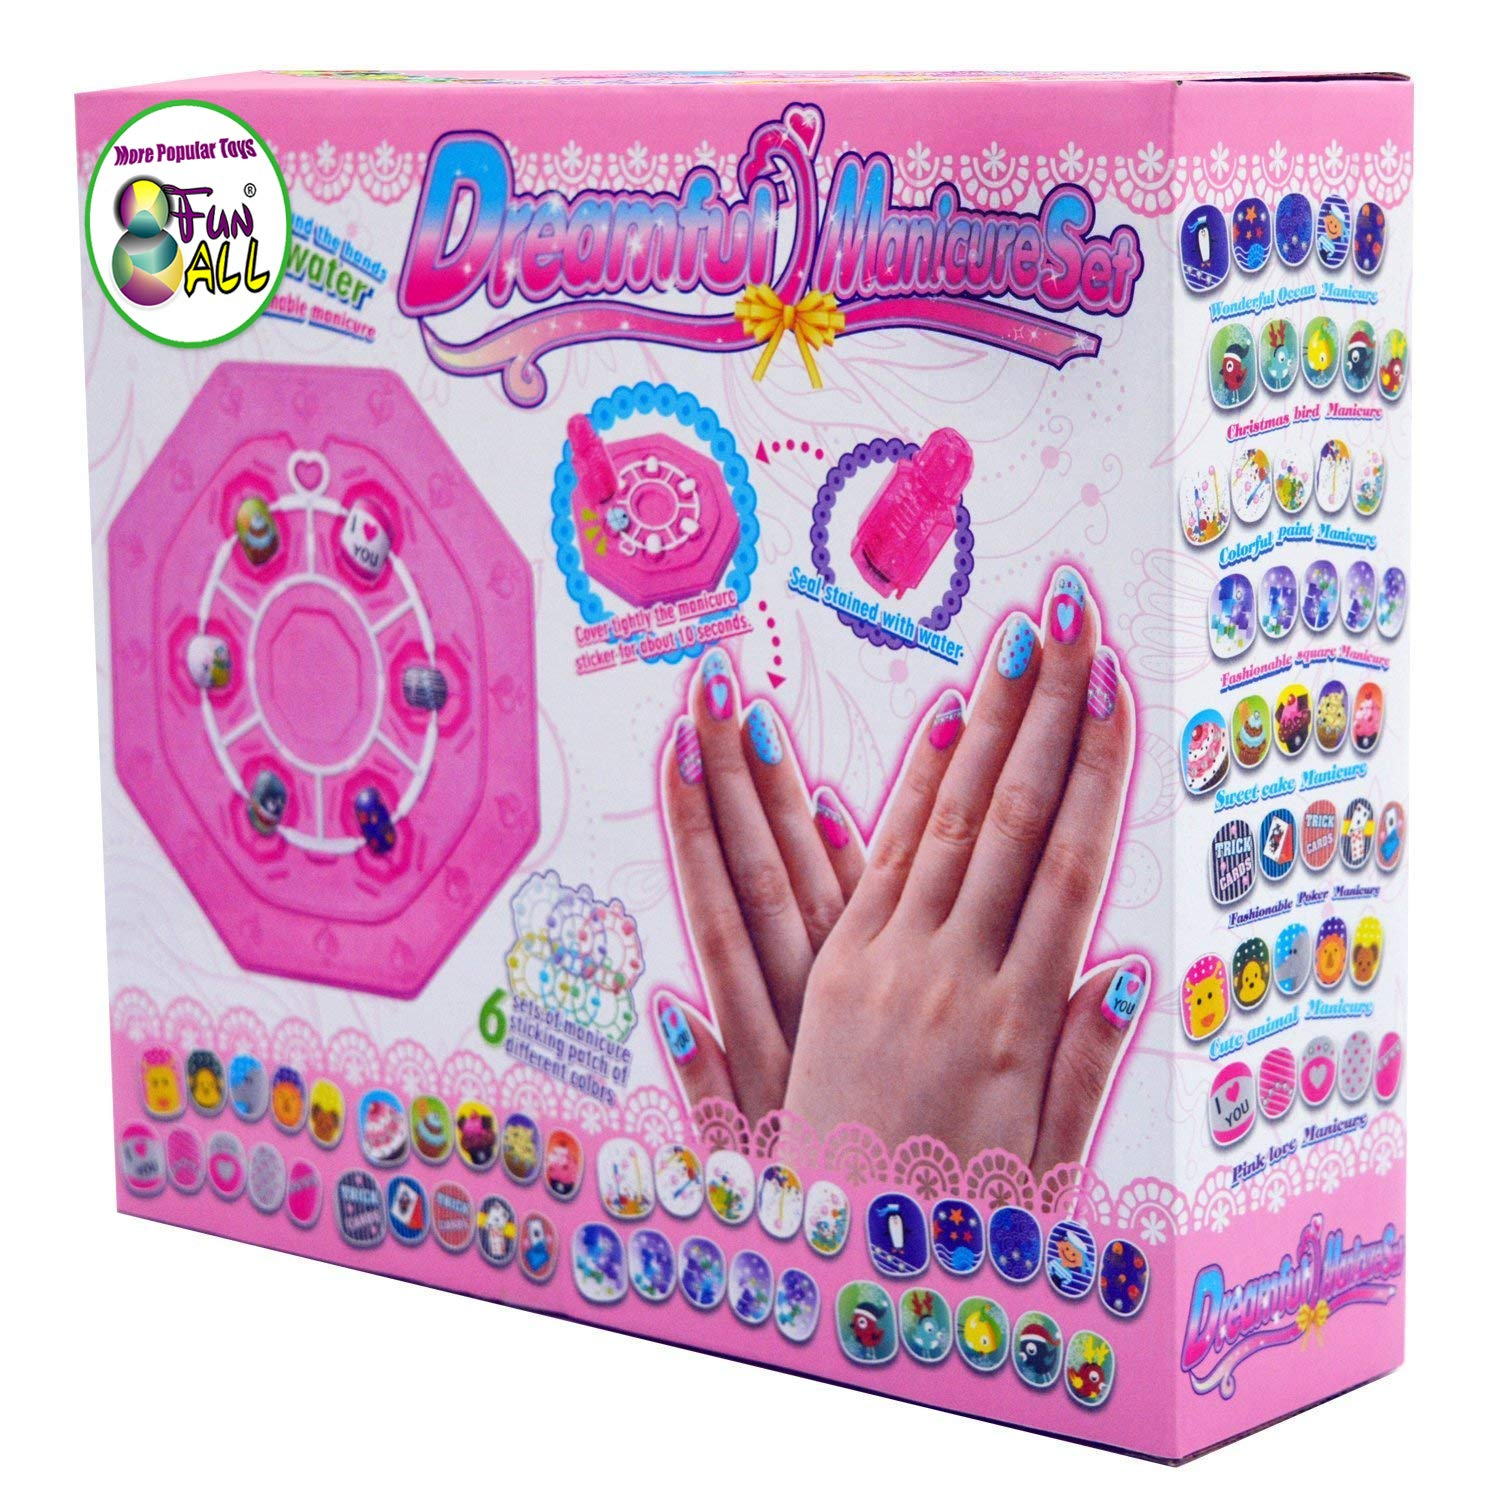 Girls Nail Studio Art Manicure Gift Colorful Fake Nails \u0026 Themes Stickers  Set Kit for Kids Makeup \u0026 Art Party Supplier